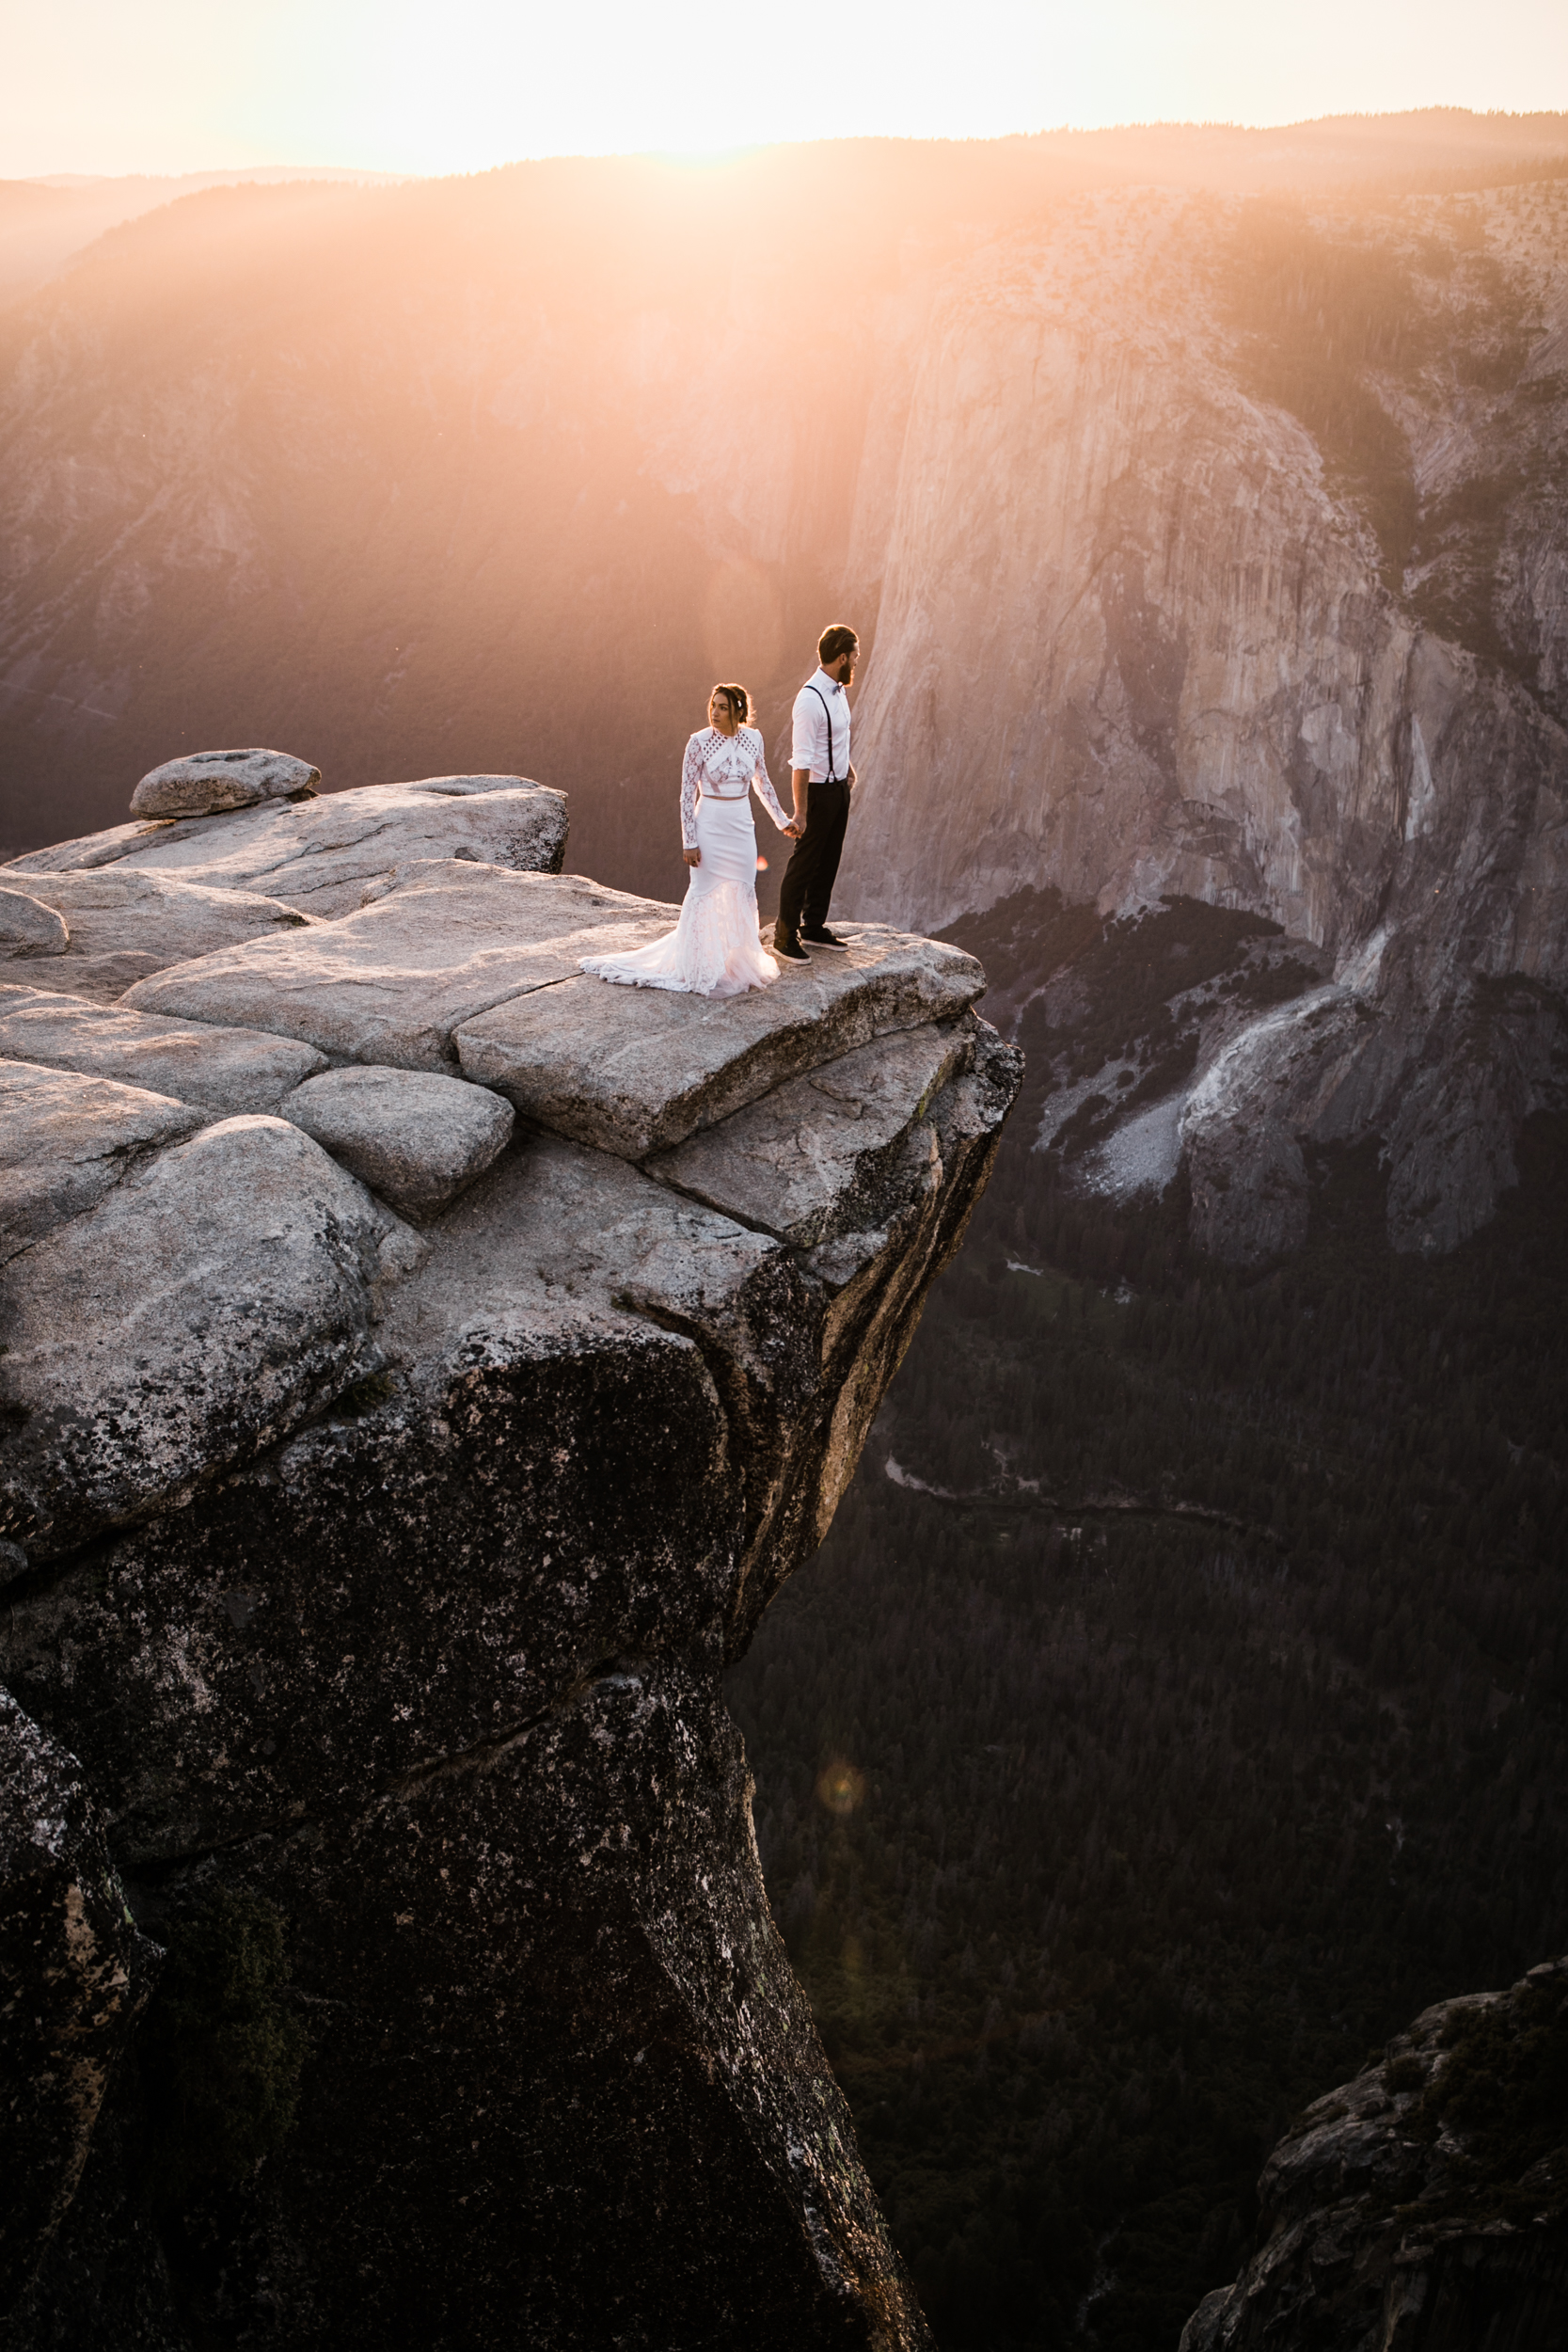 destination elopement in yosemite valley | adventure wedding portraits + romantic vows on a cliffside | national park elopement photographer | the hearnes adventure photography